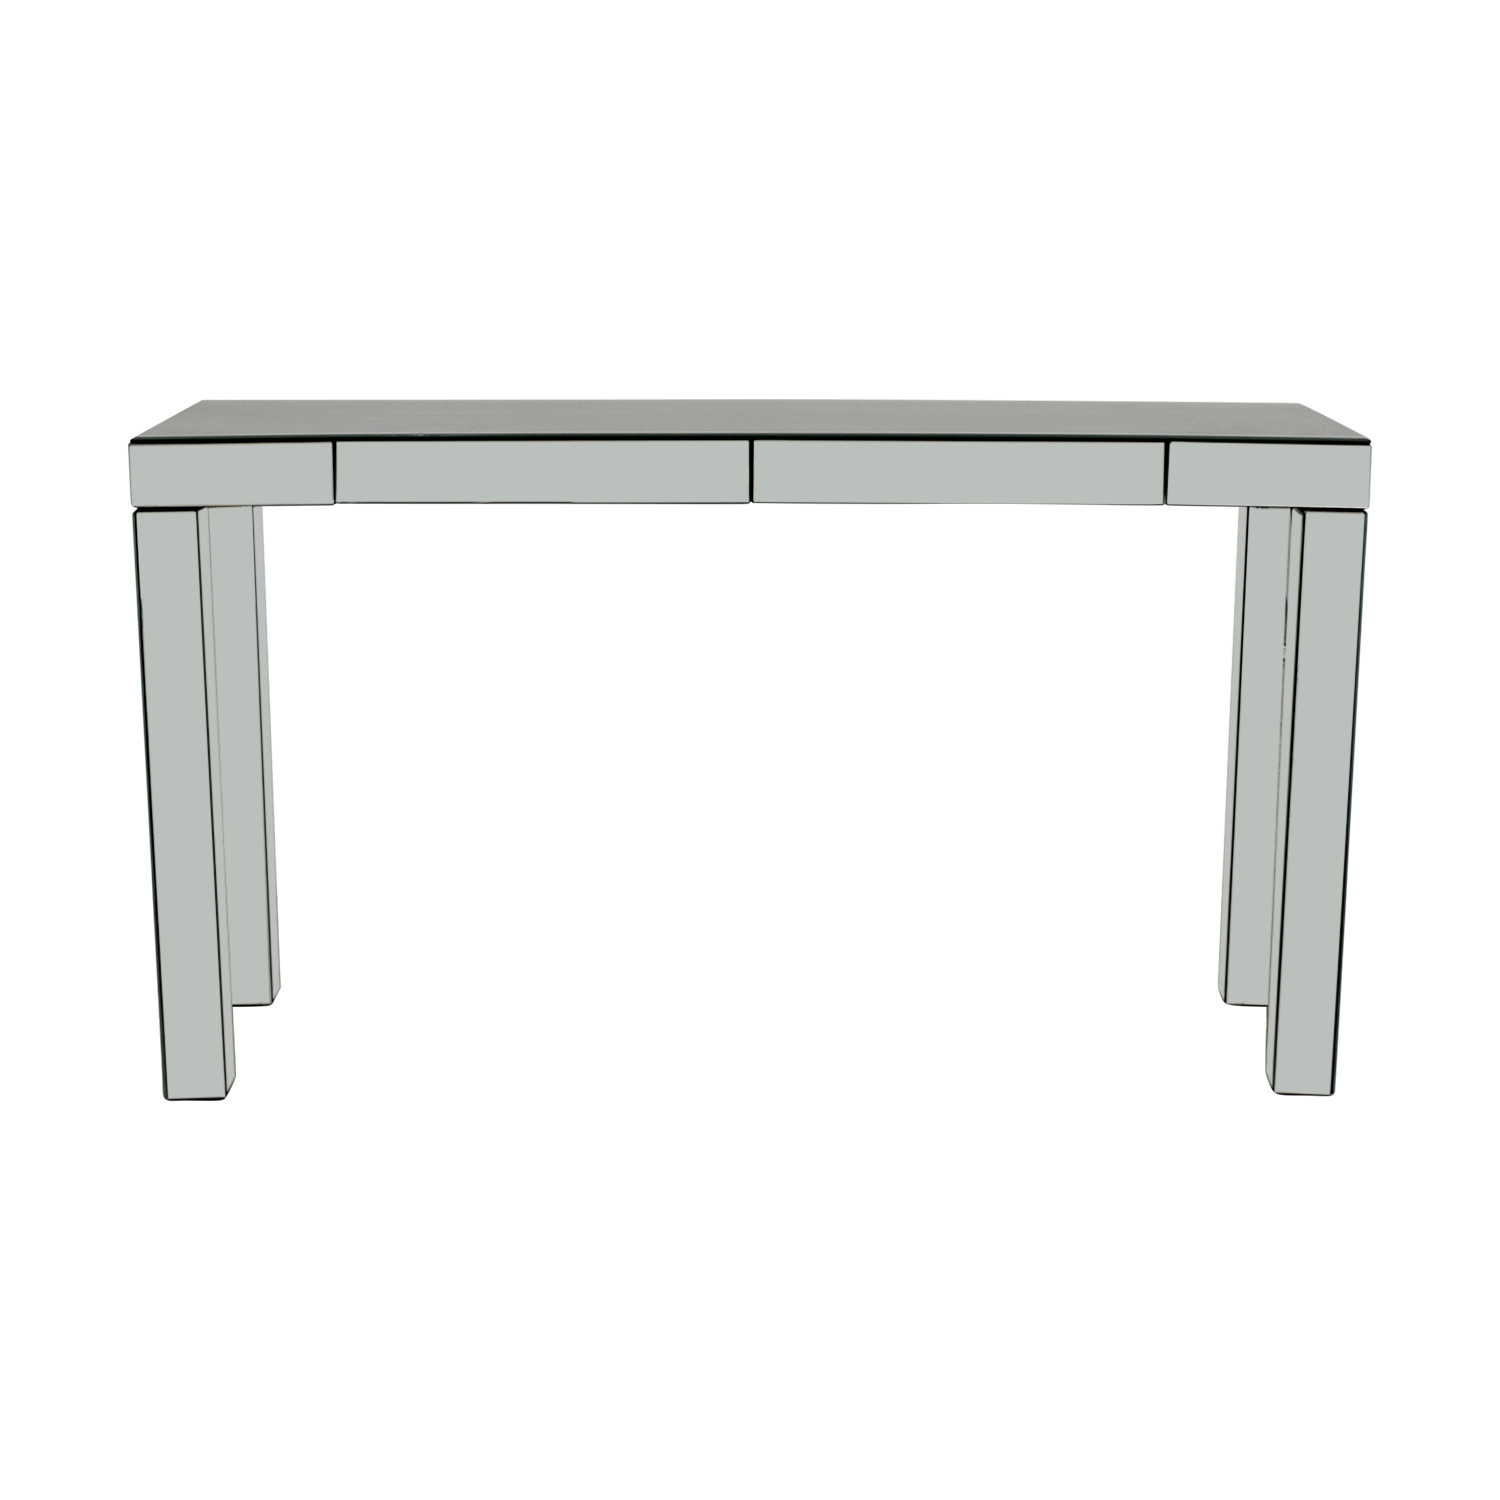 West Elm West Elm Parsons Mirrored Console nyc